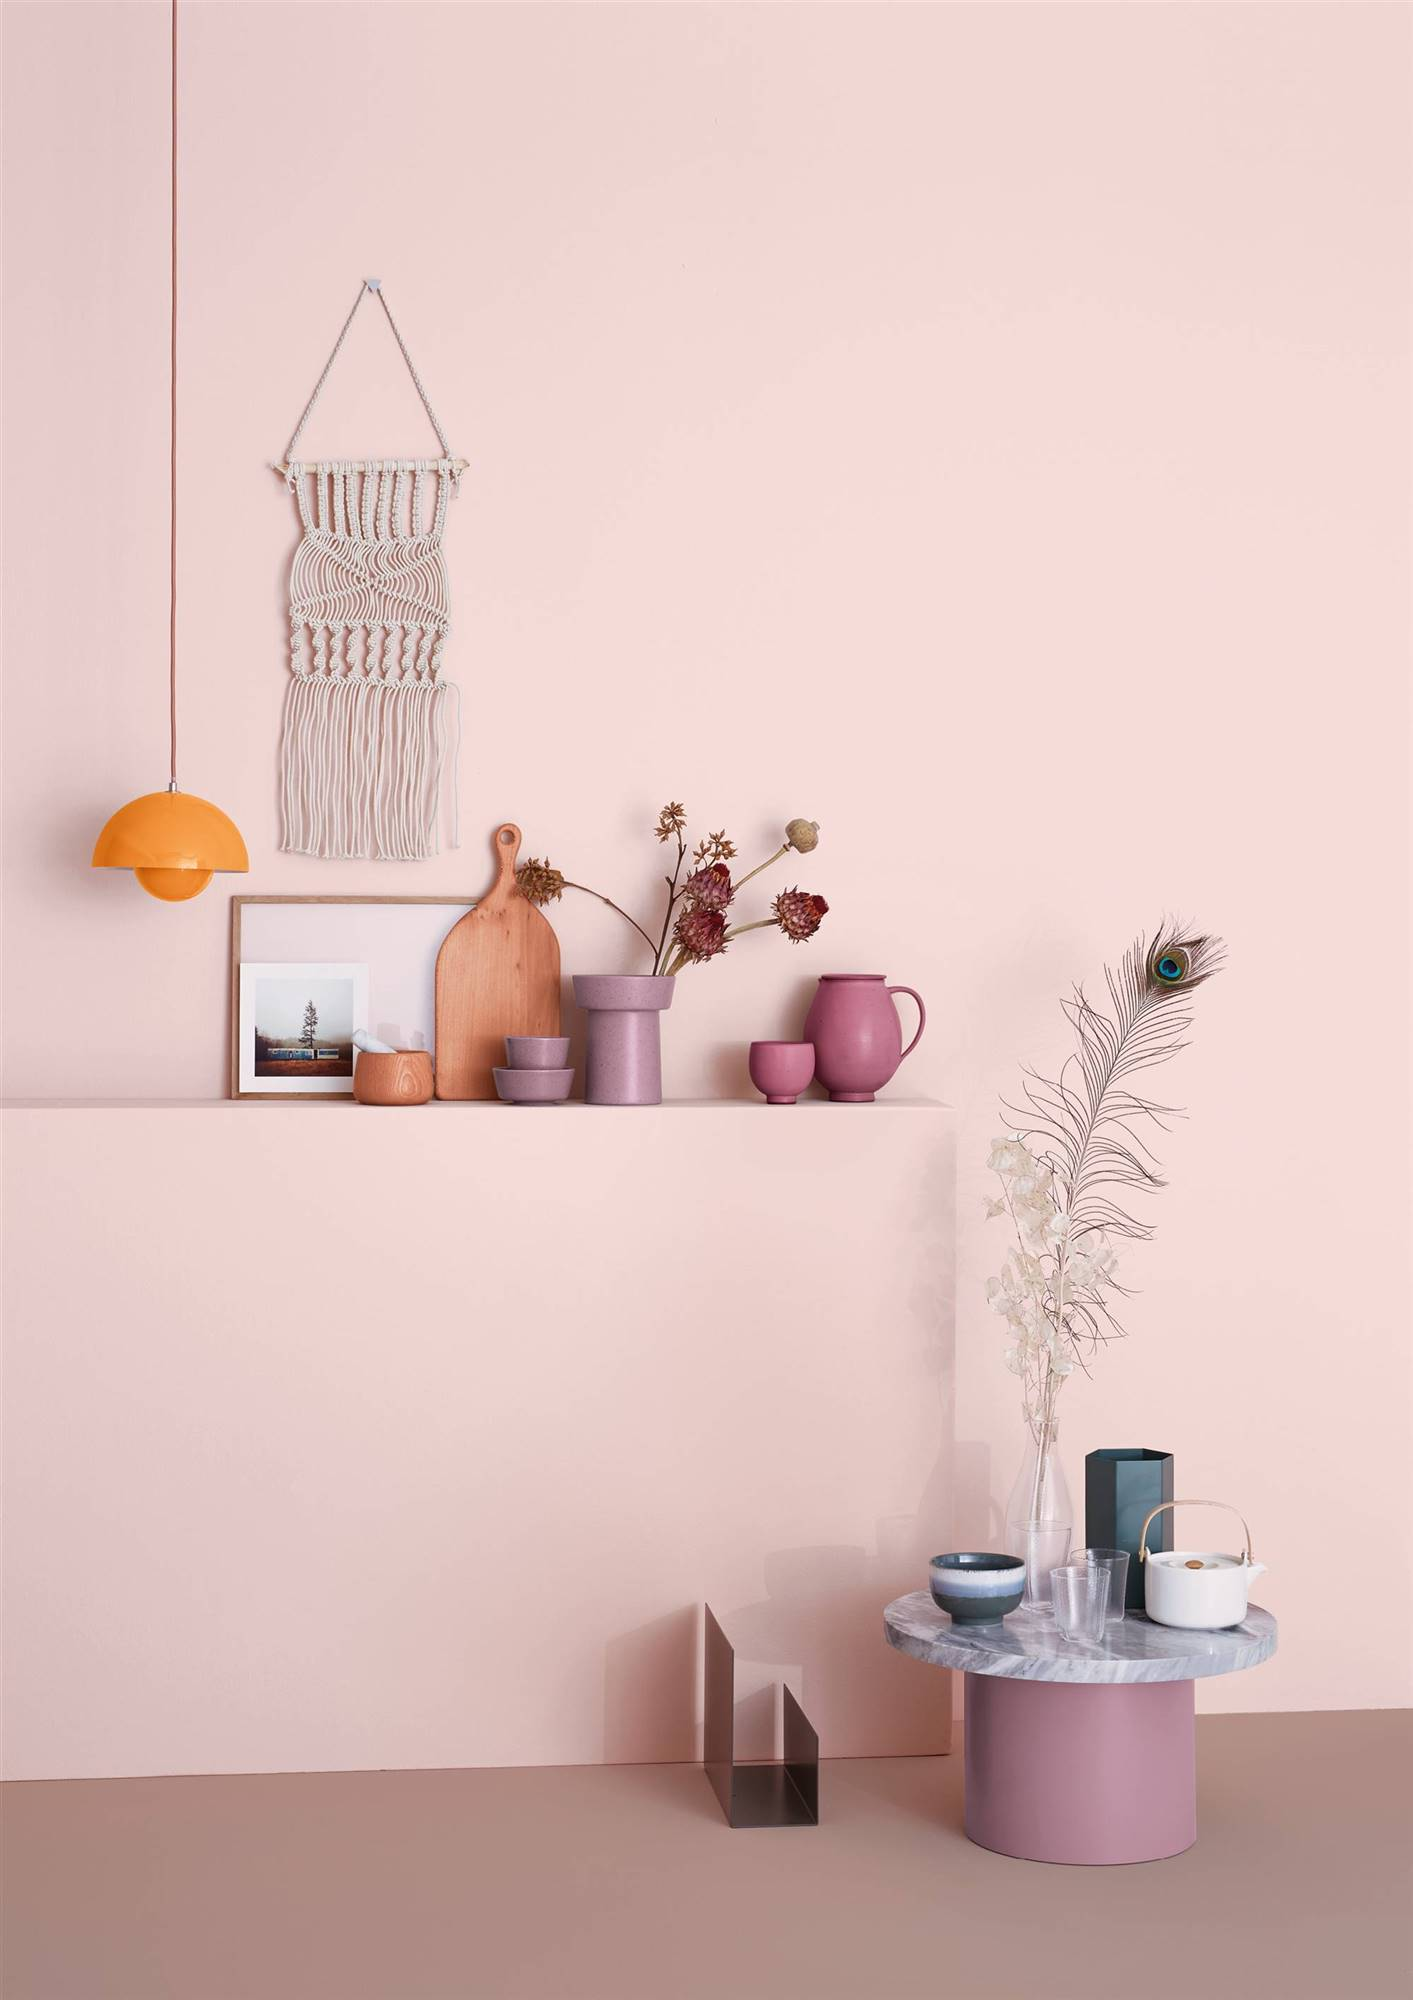 CIN Valentine Color Trends 2019 (4) Rose Breeze. Rosa Breeze, suave y muy luminoso